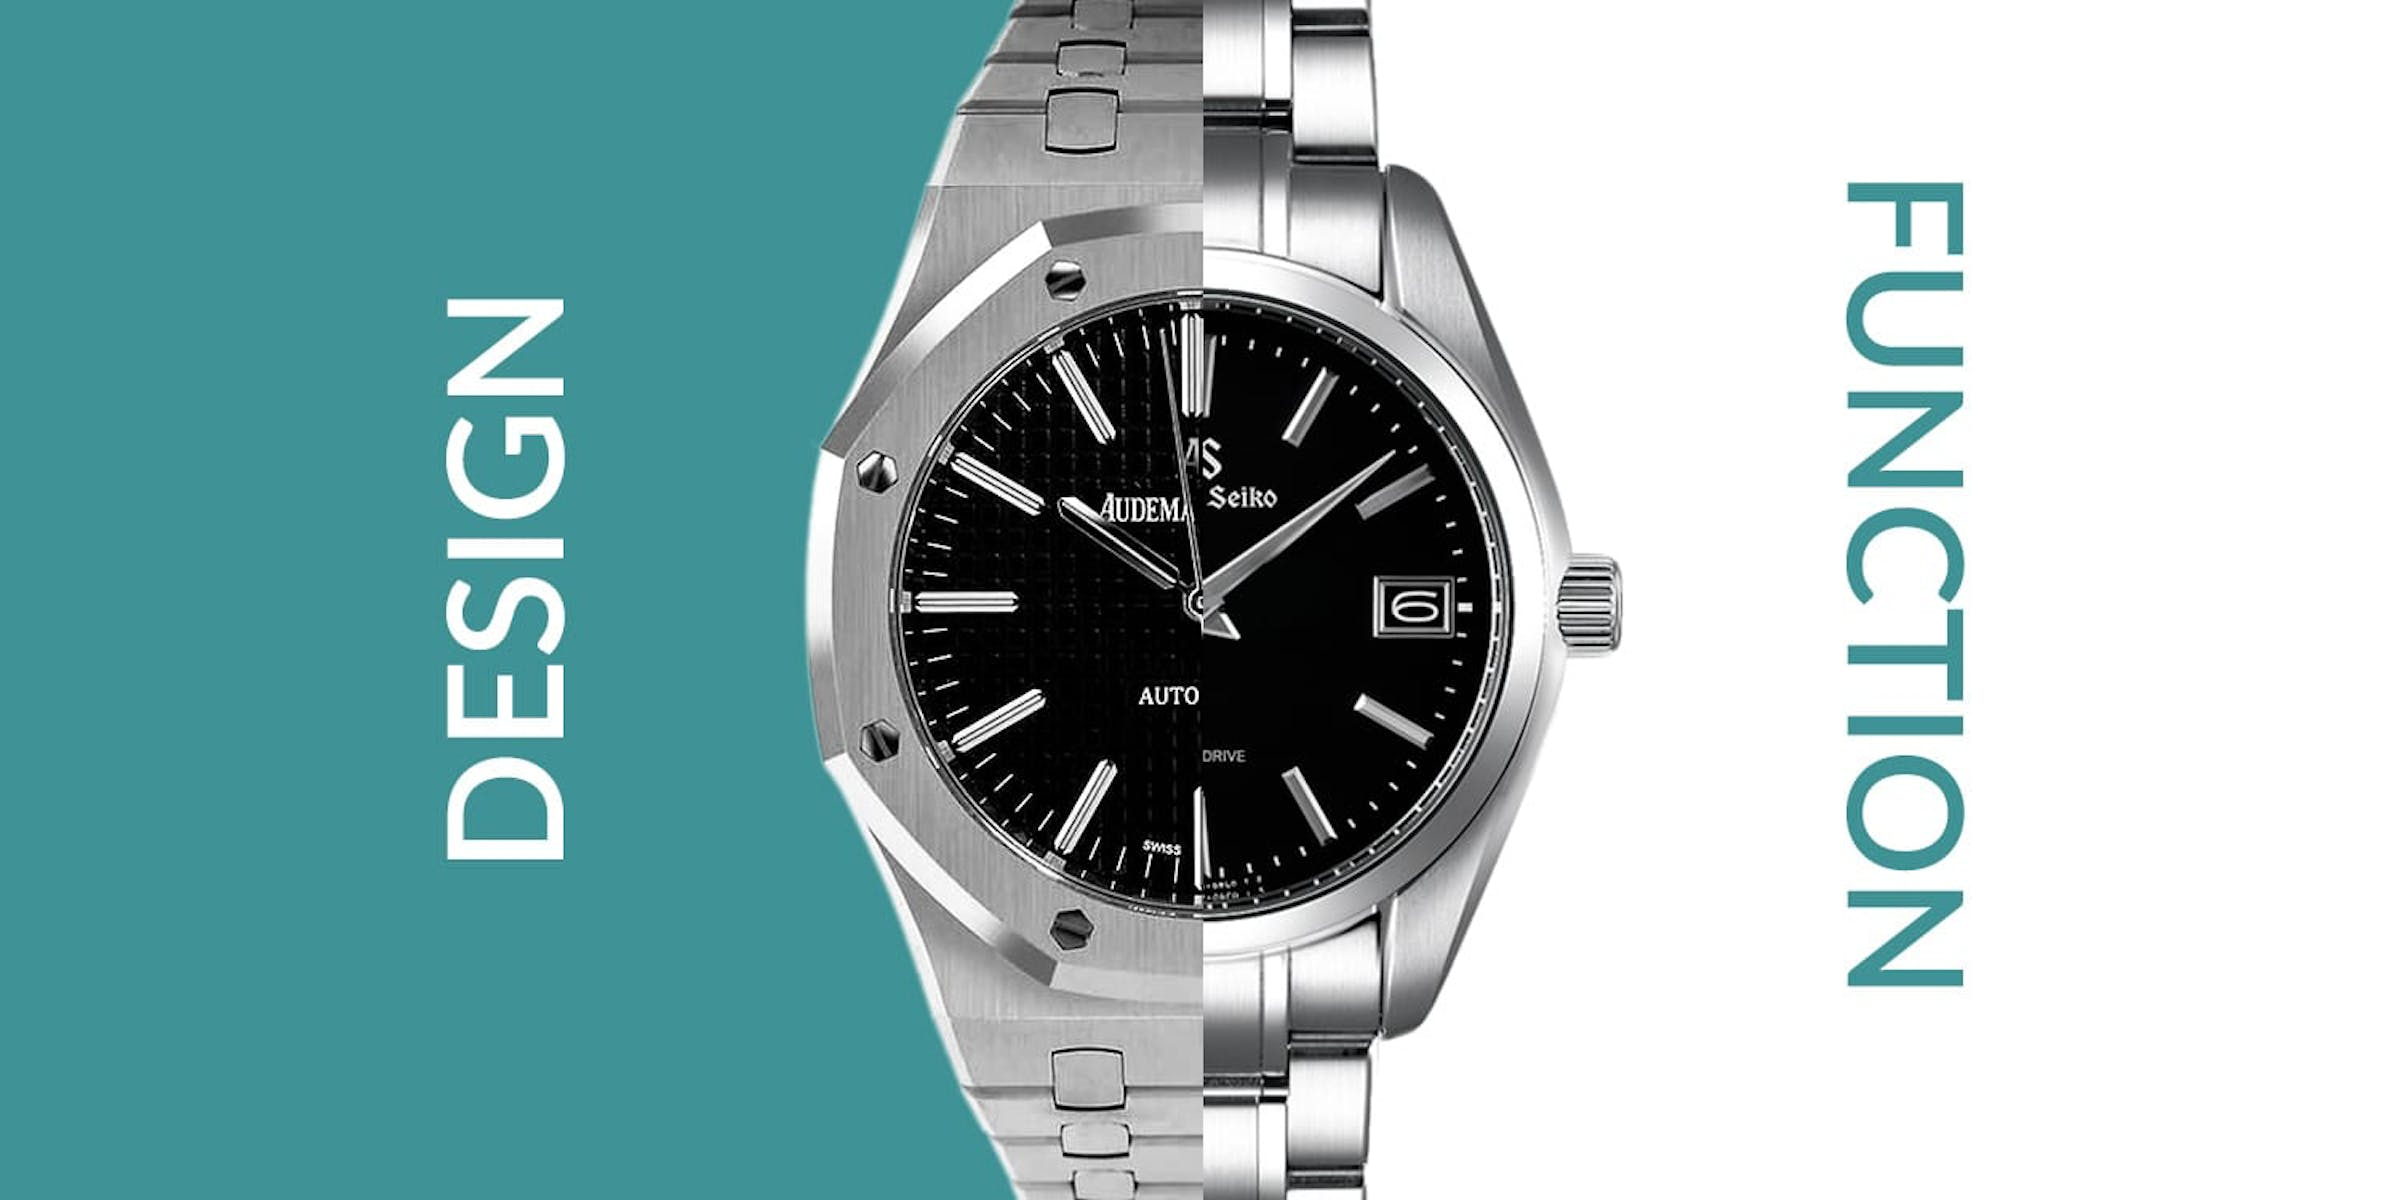 Form vs. Function in Luxury Watches: Which Is Most Important?